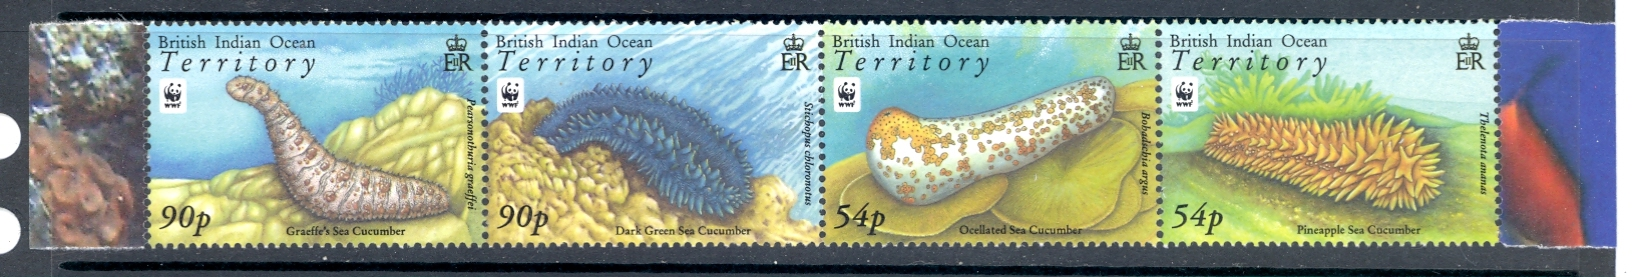 British Indian Ocean Territory SG 392-39 2008 Sea Slugs. Unmounted Mint